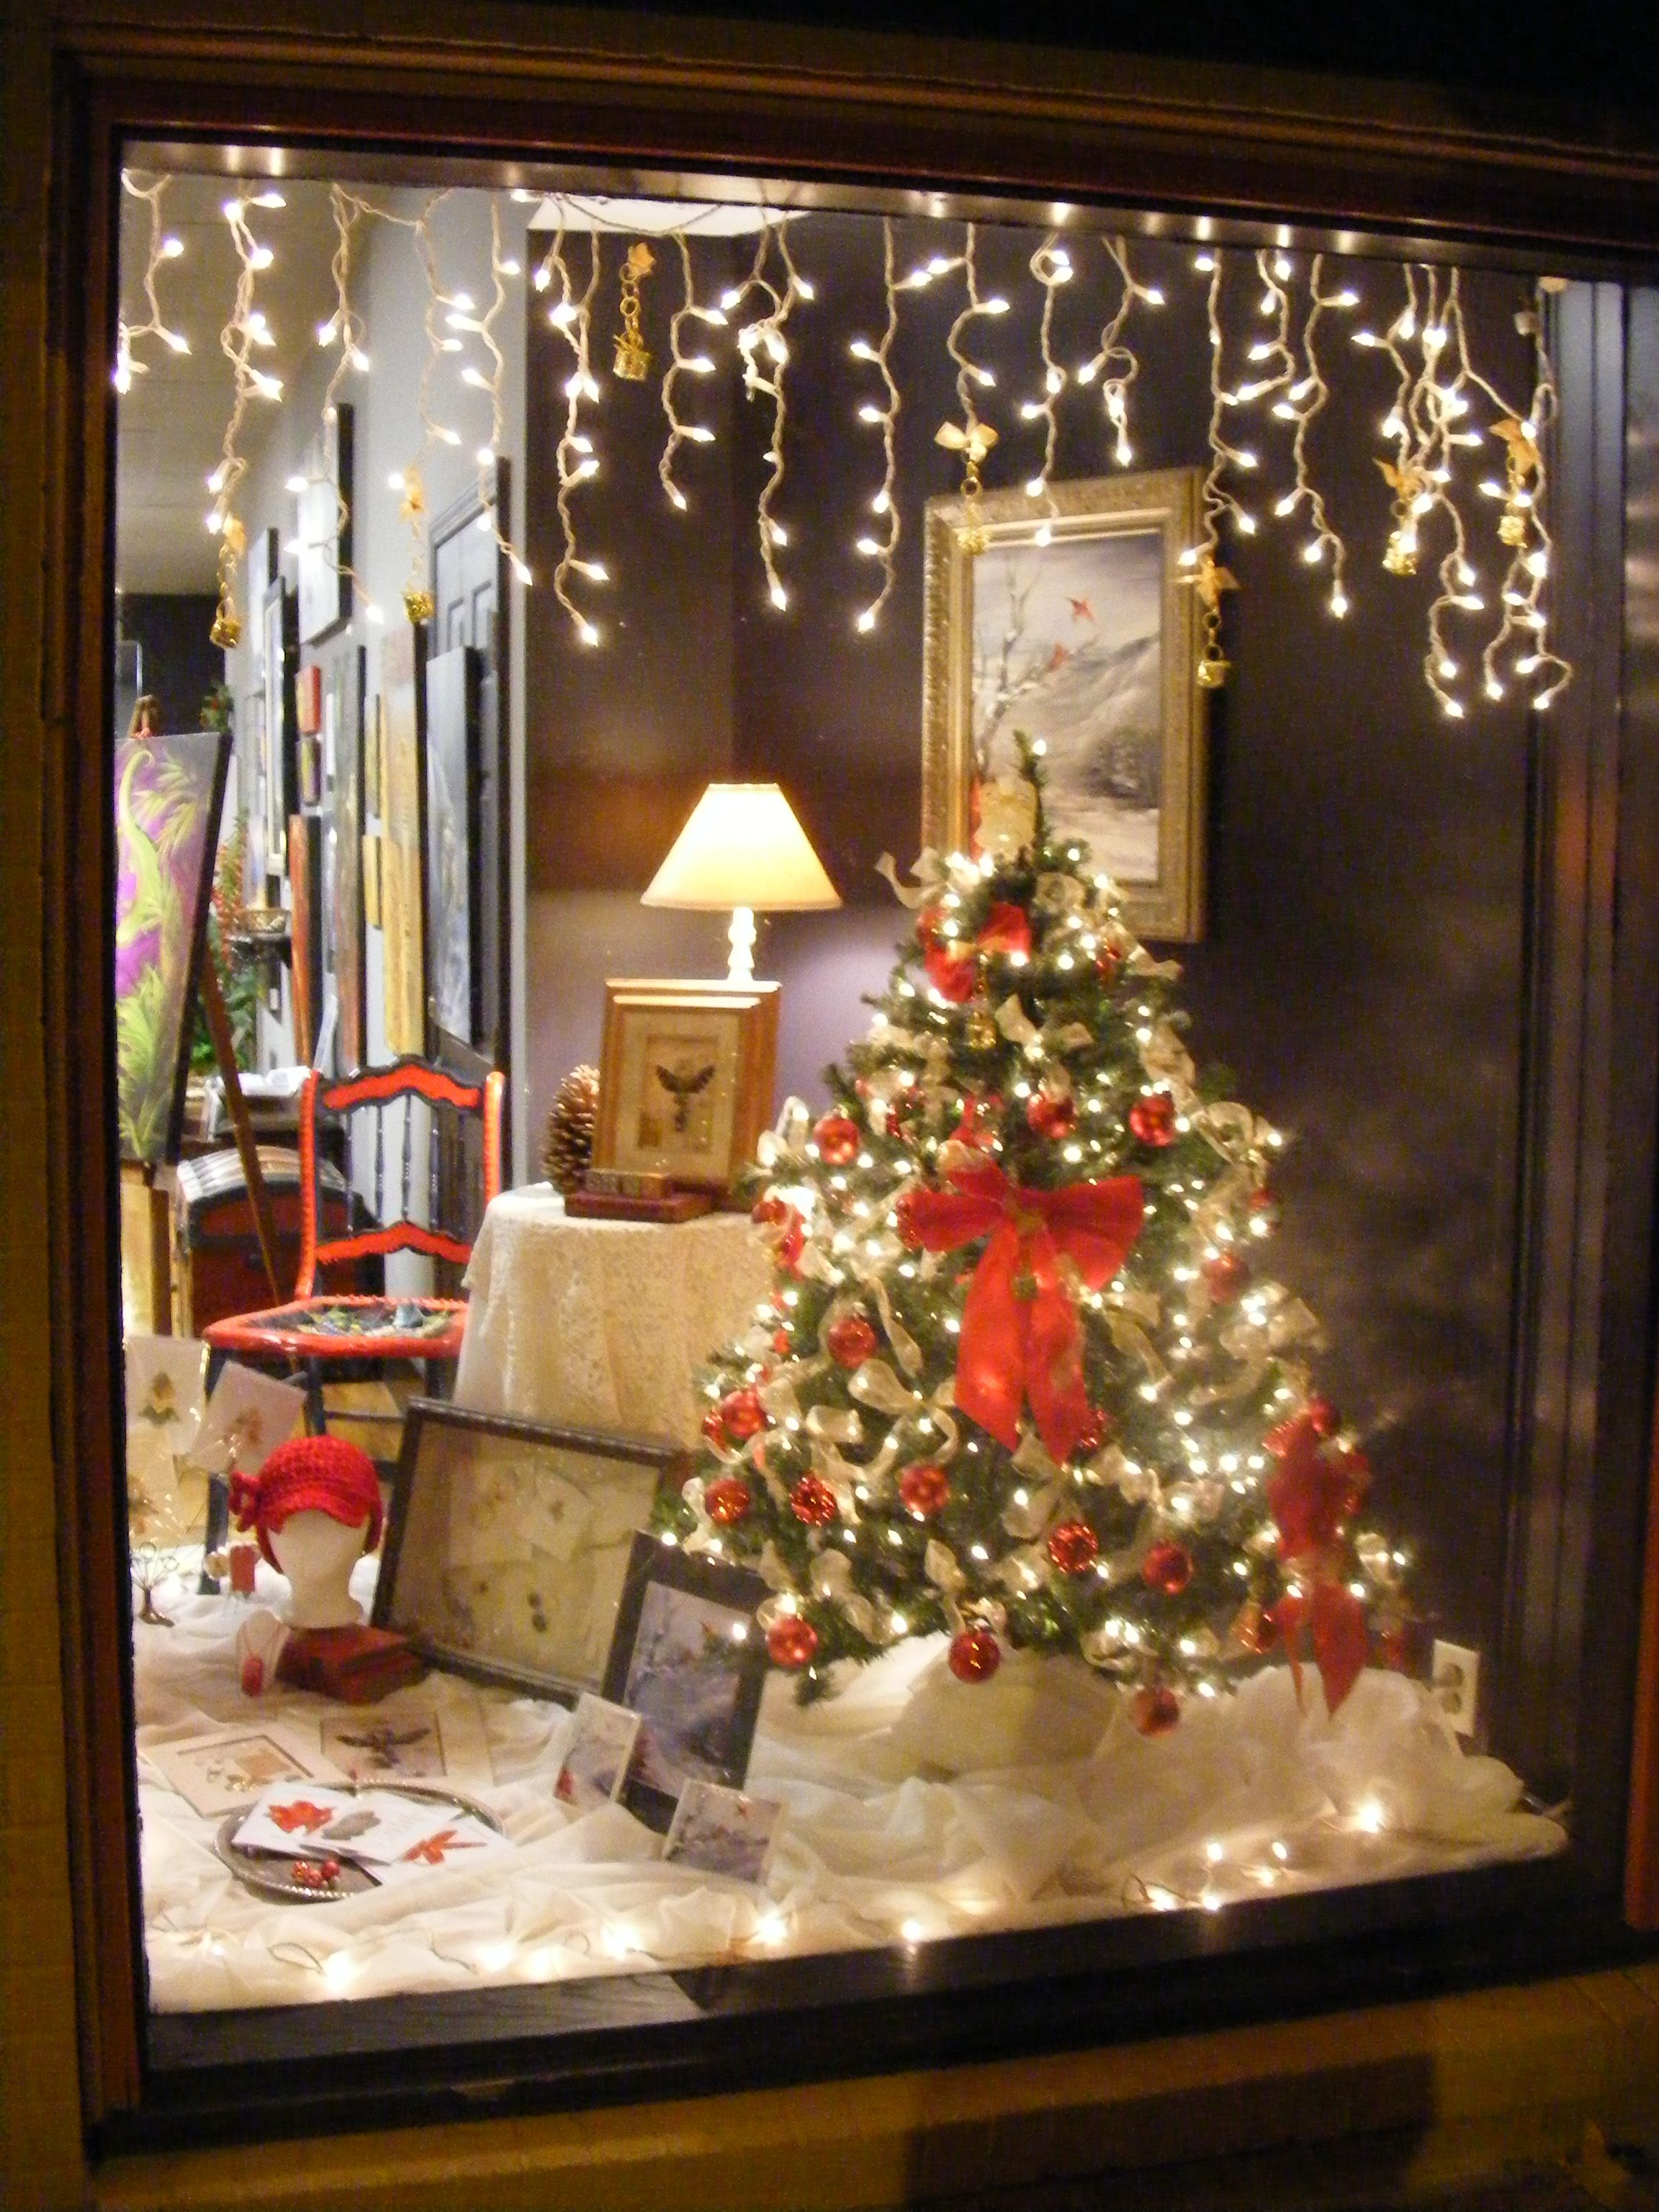 Advantages of Seasonal Employment - ZING Blog by Quicken ... |Holiday Window Displays